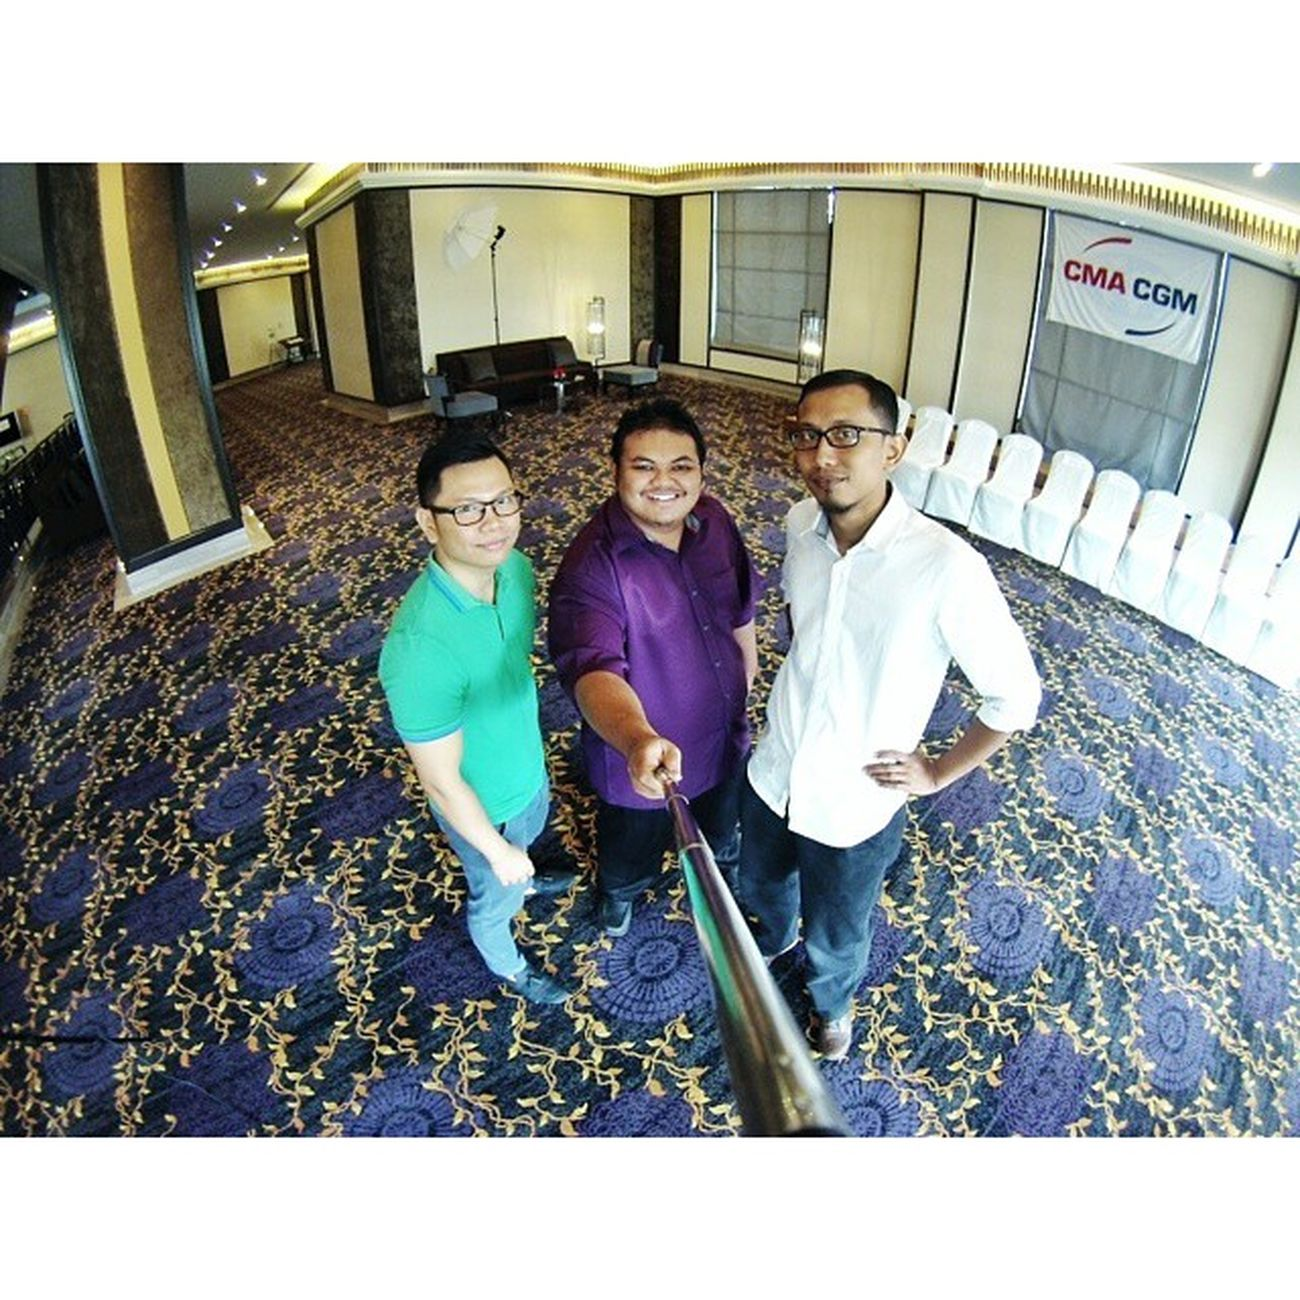 Selfie together2 lah at Themajestichotel Kualalumpur for CMACGM Groupphoto @faixs @chairongjay